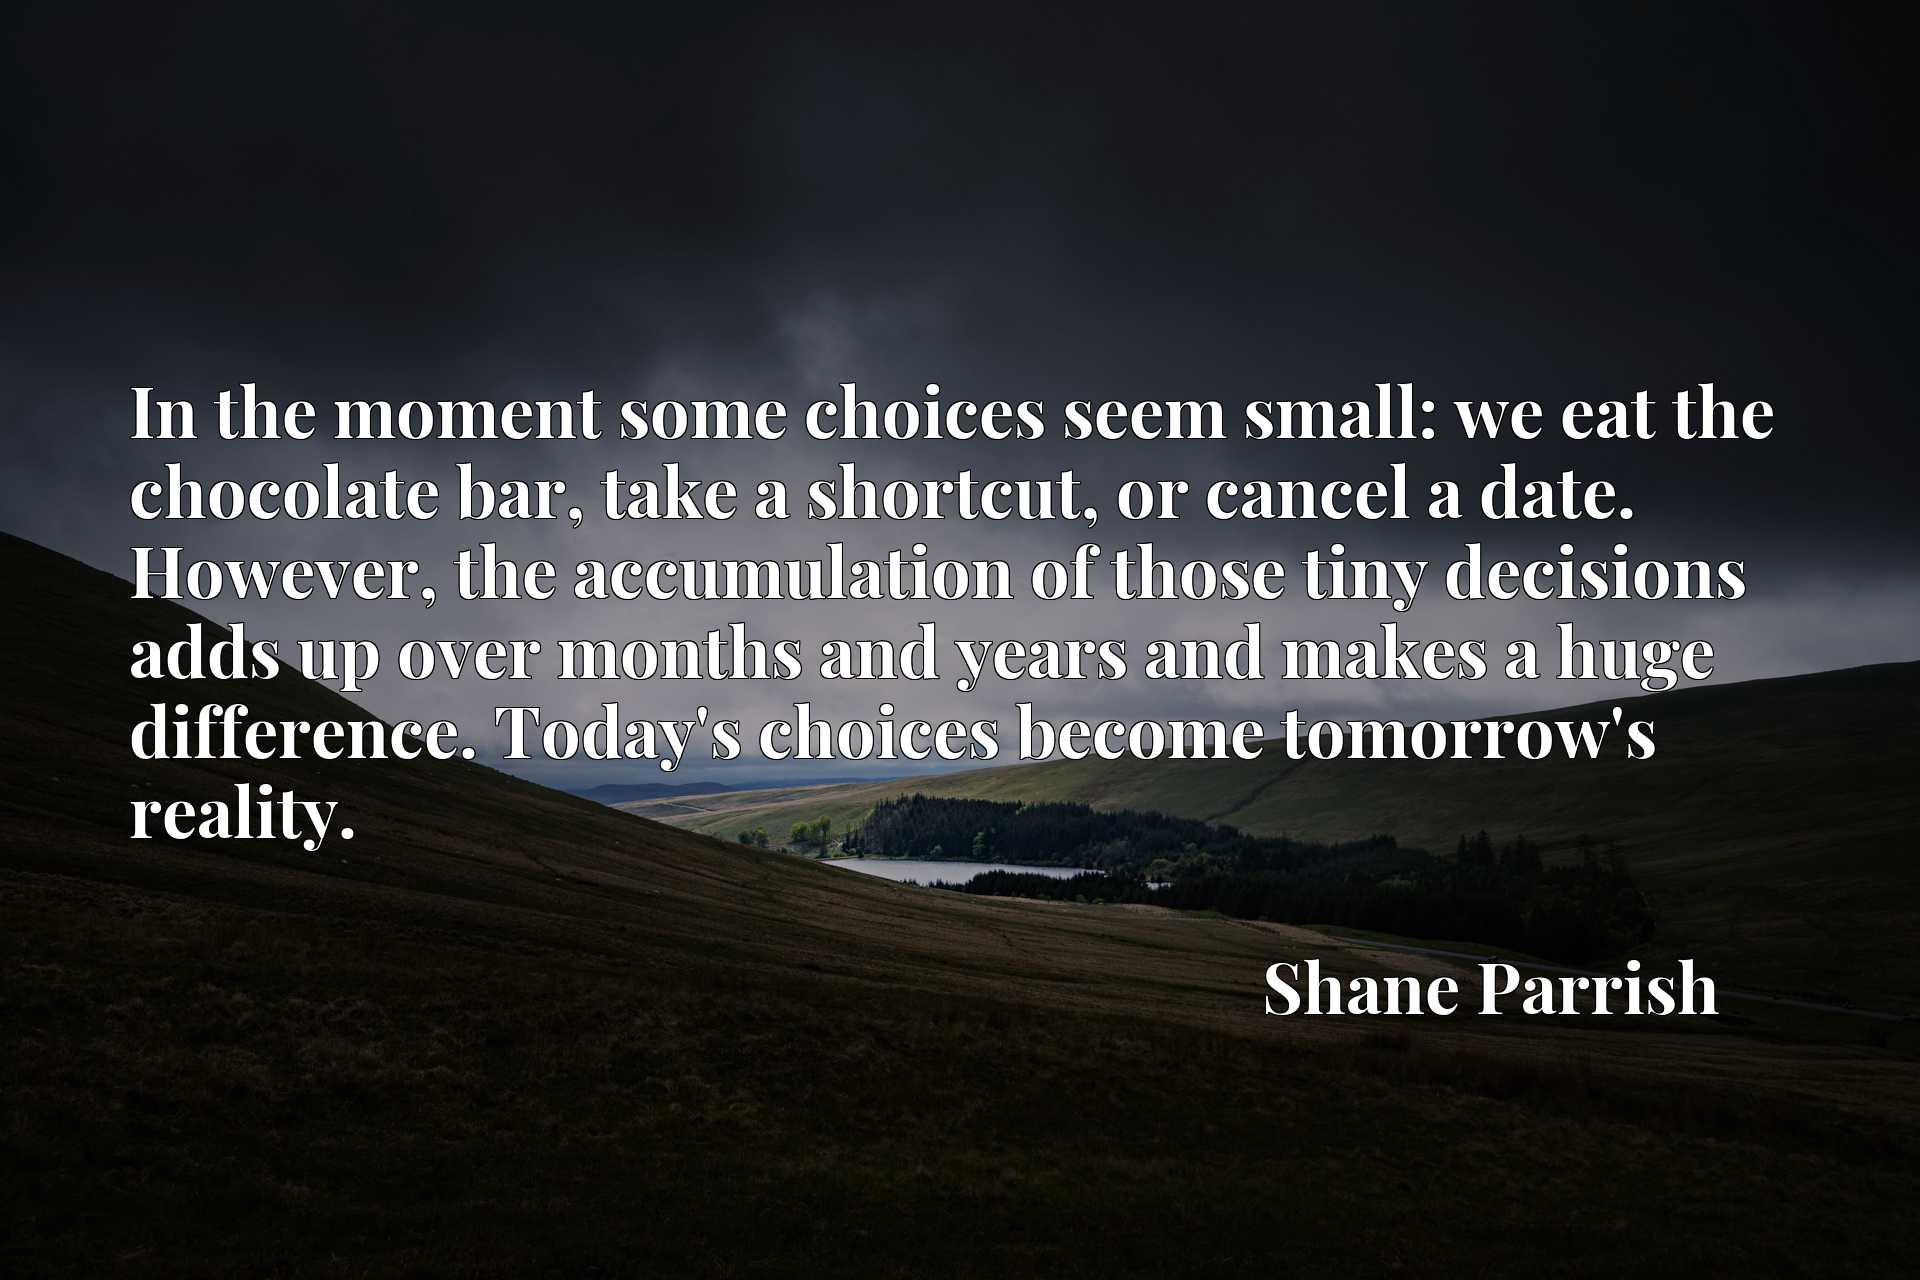 In the moment some choices seem small: we eat the chocolate bar, take a shortcut, or cancel a date. However, the accumulation of those tiny decisions adds up over months and years and makes a huge difference. Today's choices become tomorrow's reality.